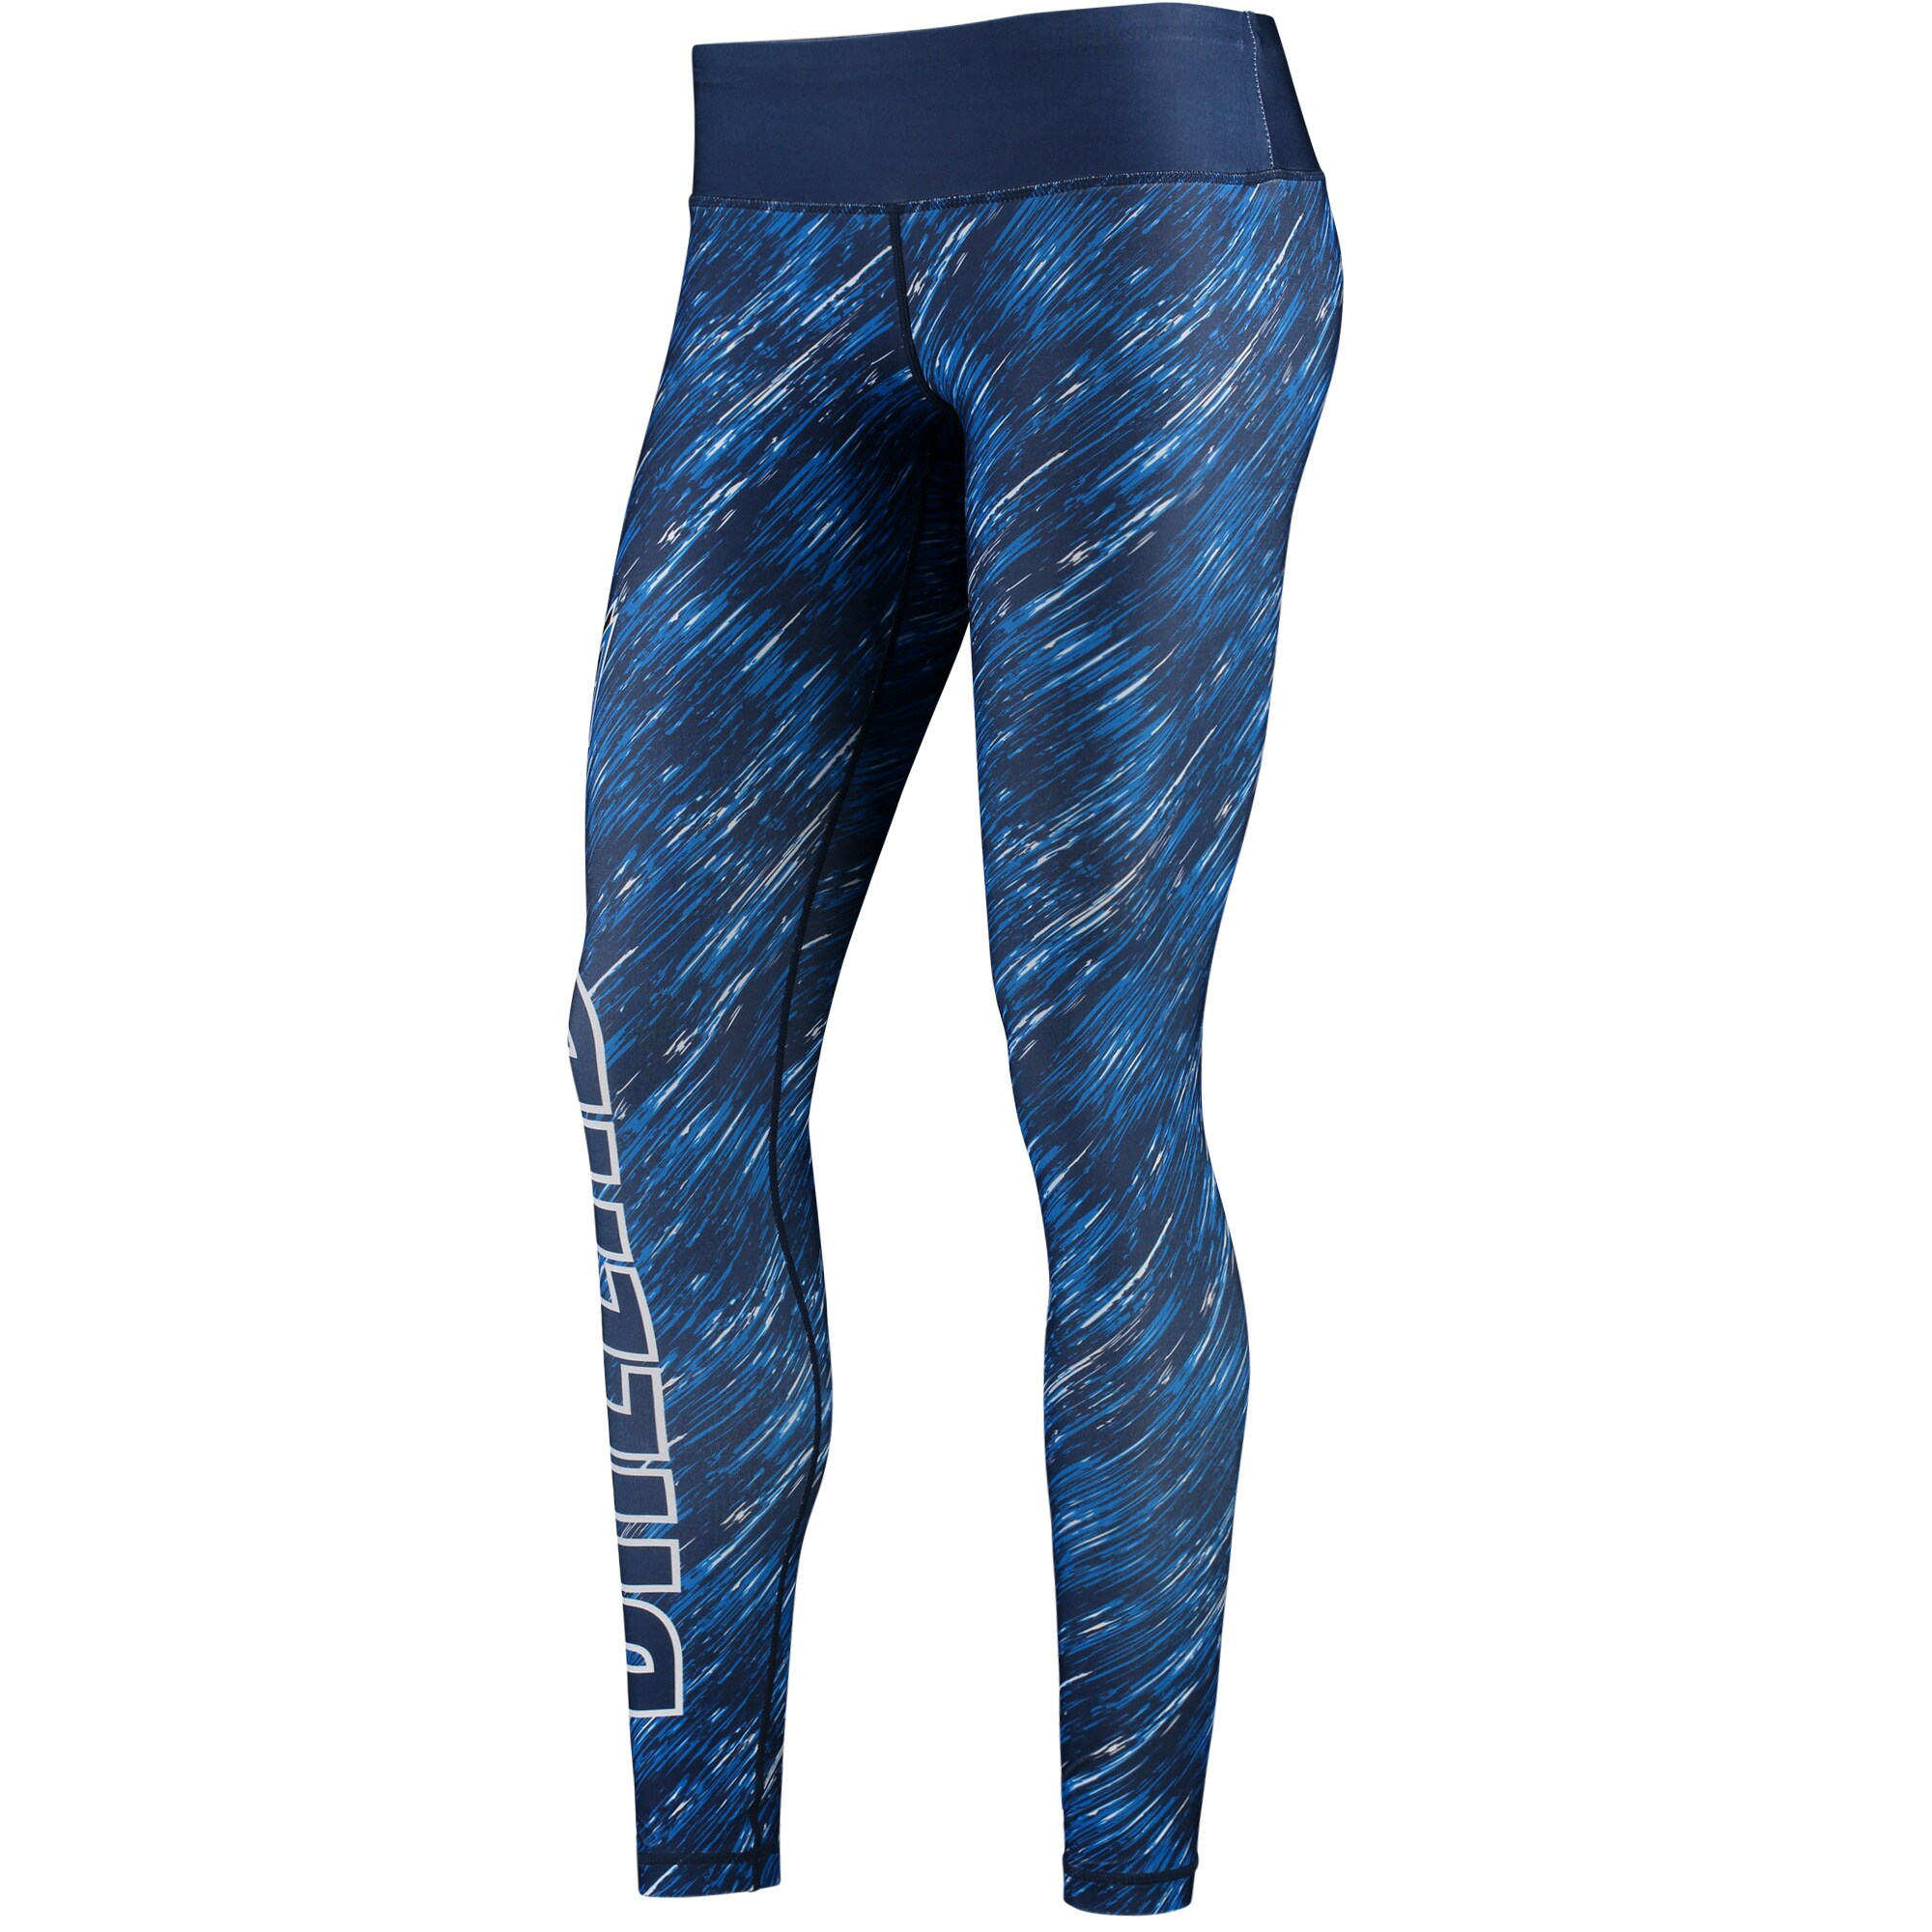 Dallas Mavericks Women's Static Rain Leggings - Navy